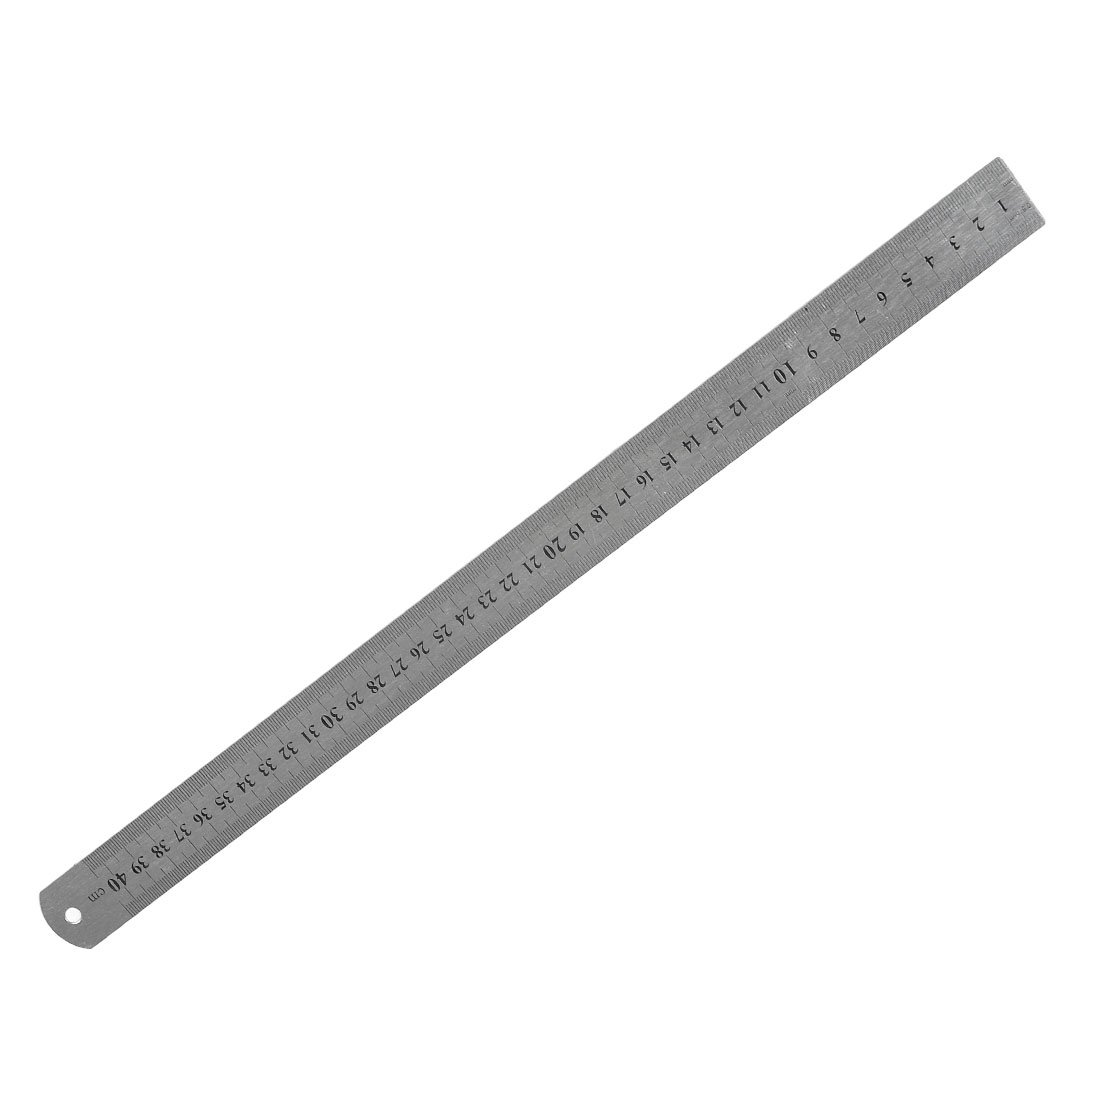 Blel Hot Stainless Steel 16 Inch Straight Ruler Measuring